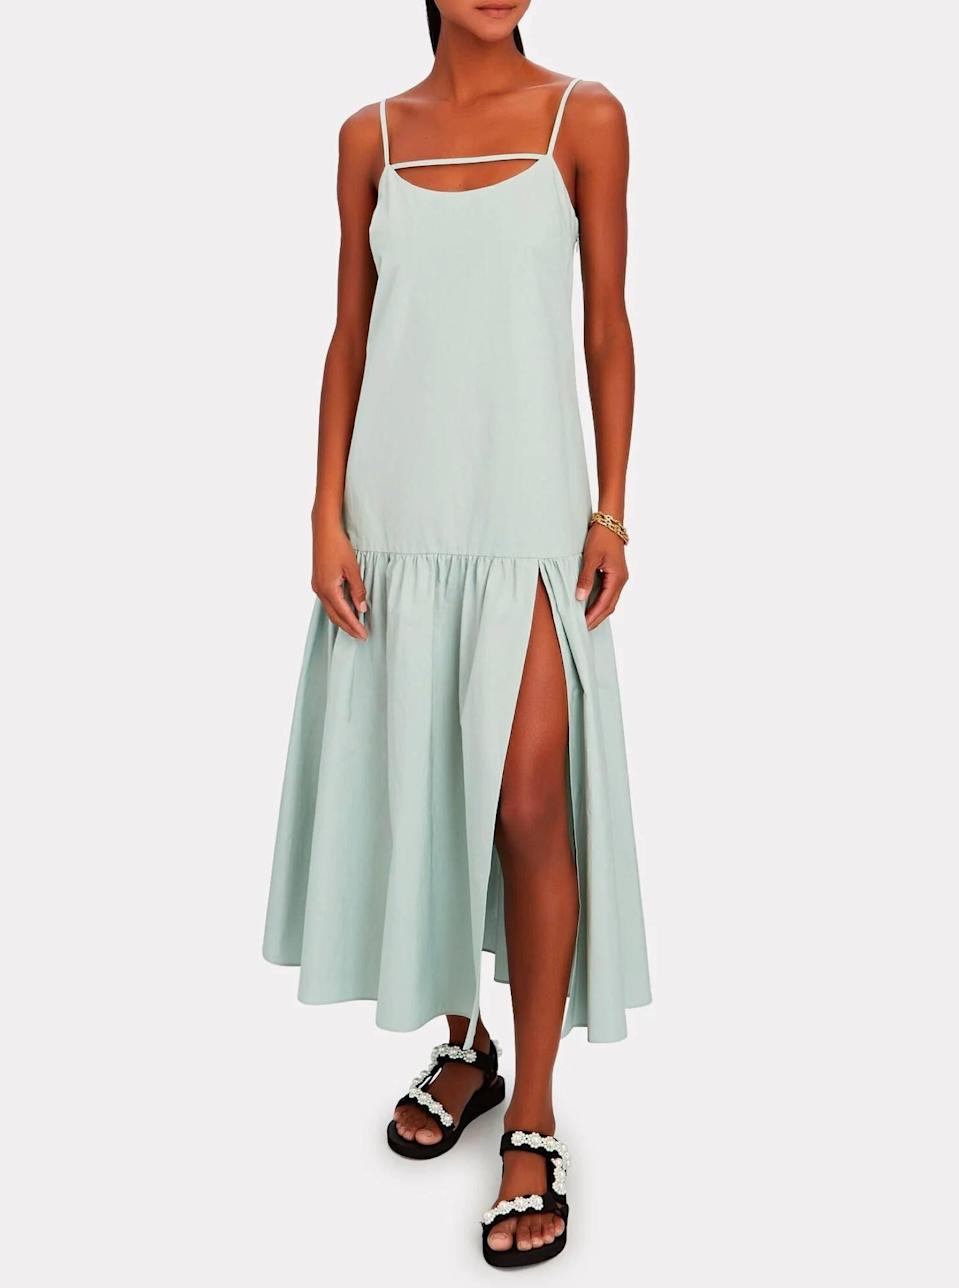 """Let the thoughtful detailing on this poplin style do the talking, and pair with adorned flatforms when temps are scorching. $328, Intermix. <a href=""""https://www.intermixonline.com/intermix/isla-sleeveless-poplin-midi-dress/AFD284-1-EXCL.html"""" rel=""""nofollow noopener"""" target=""""_blank"""" data-ylk=""""slk:Get it now!"""" class=""""link rapid-noclick-resp"""">Get it now!</a>"""